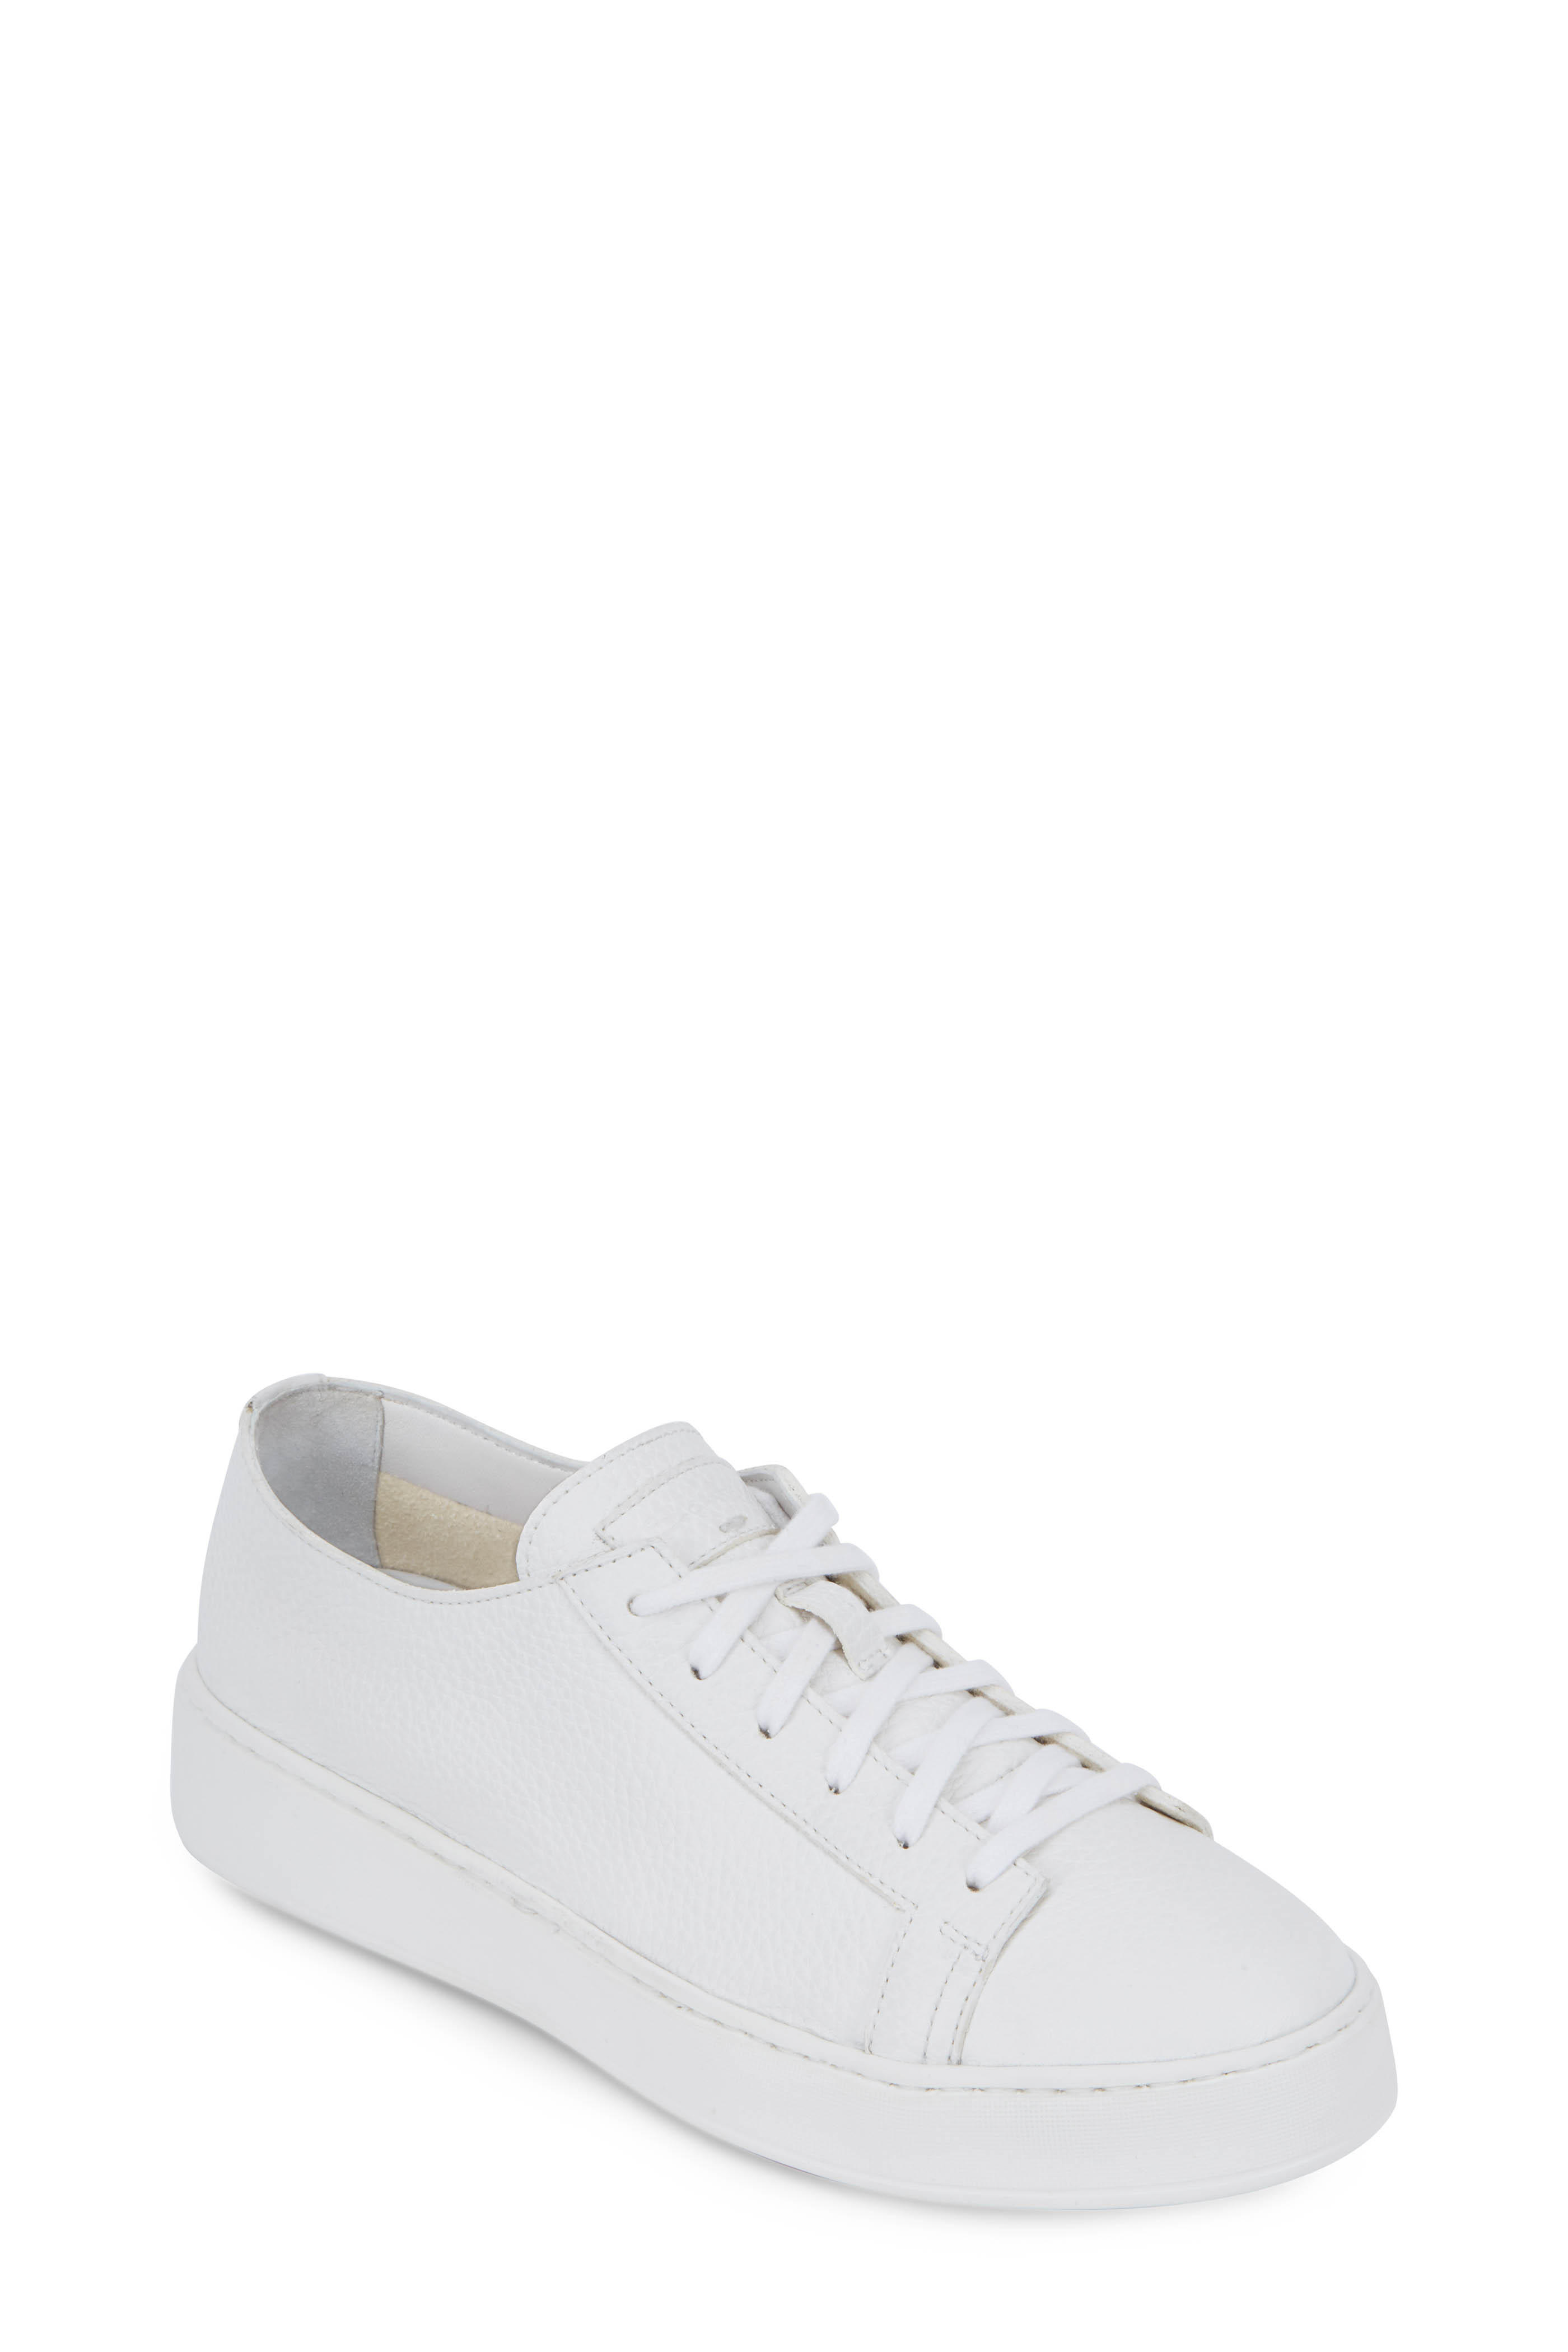 Santoni Clean Iconic White Leather Sneaker | Mitchell Stores